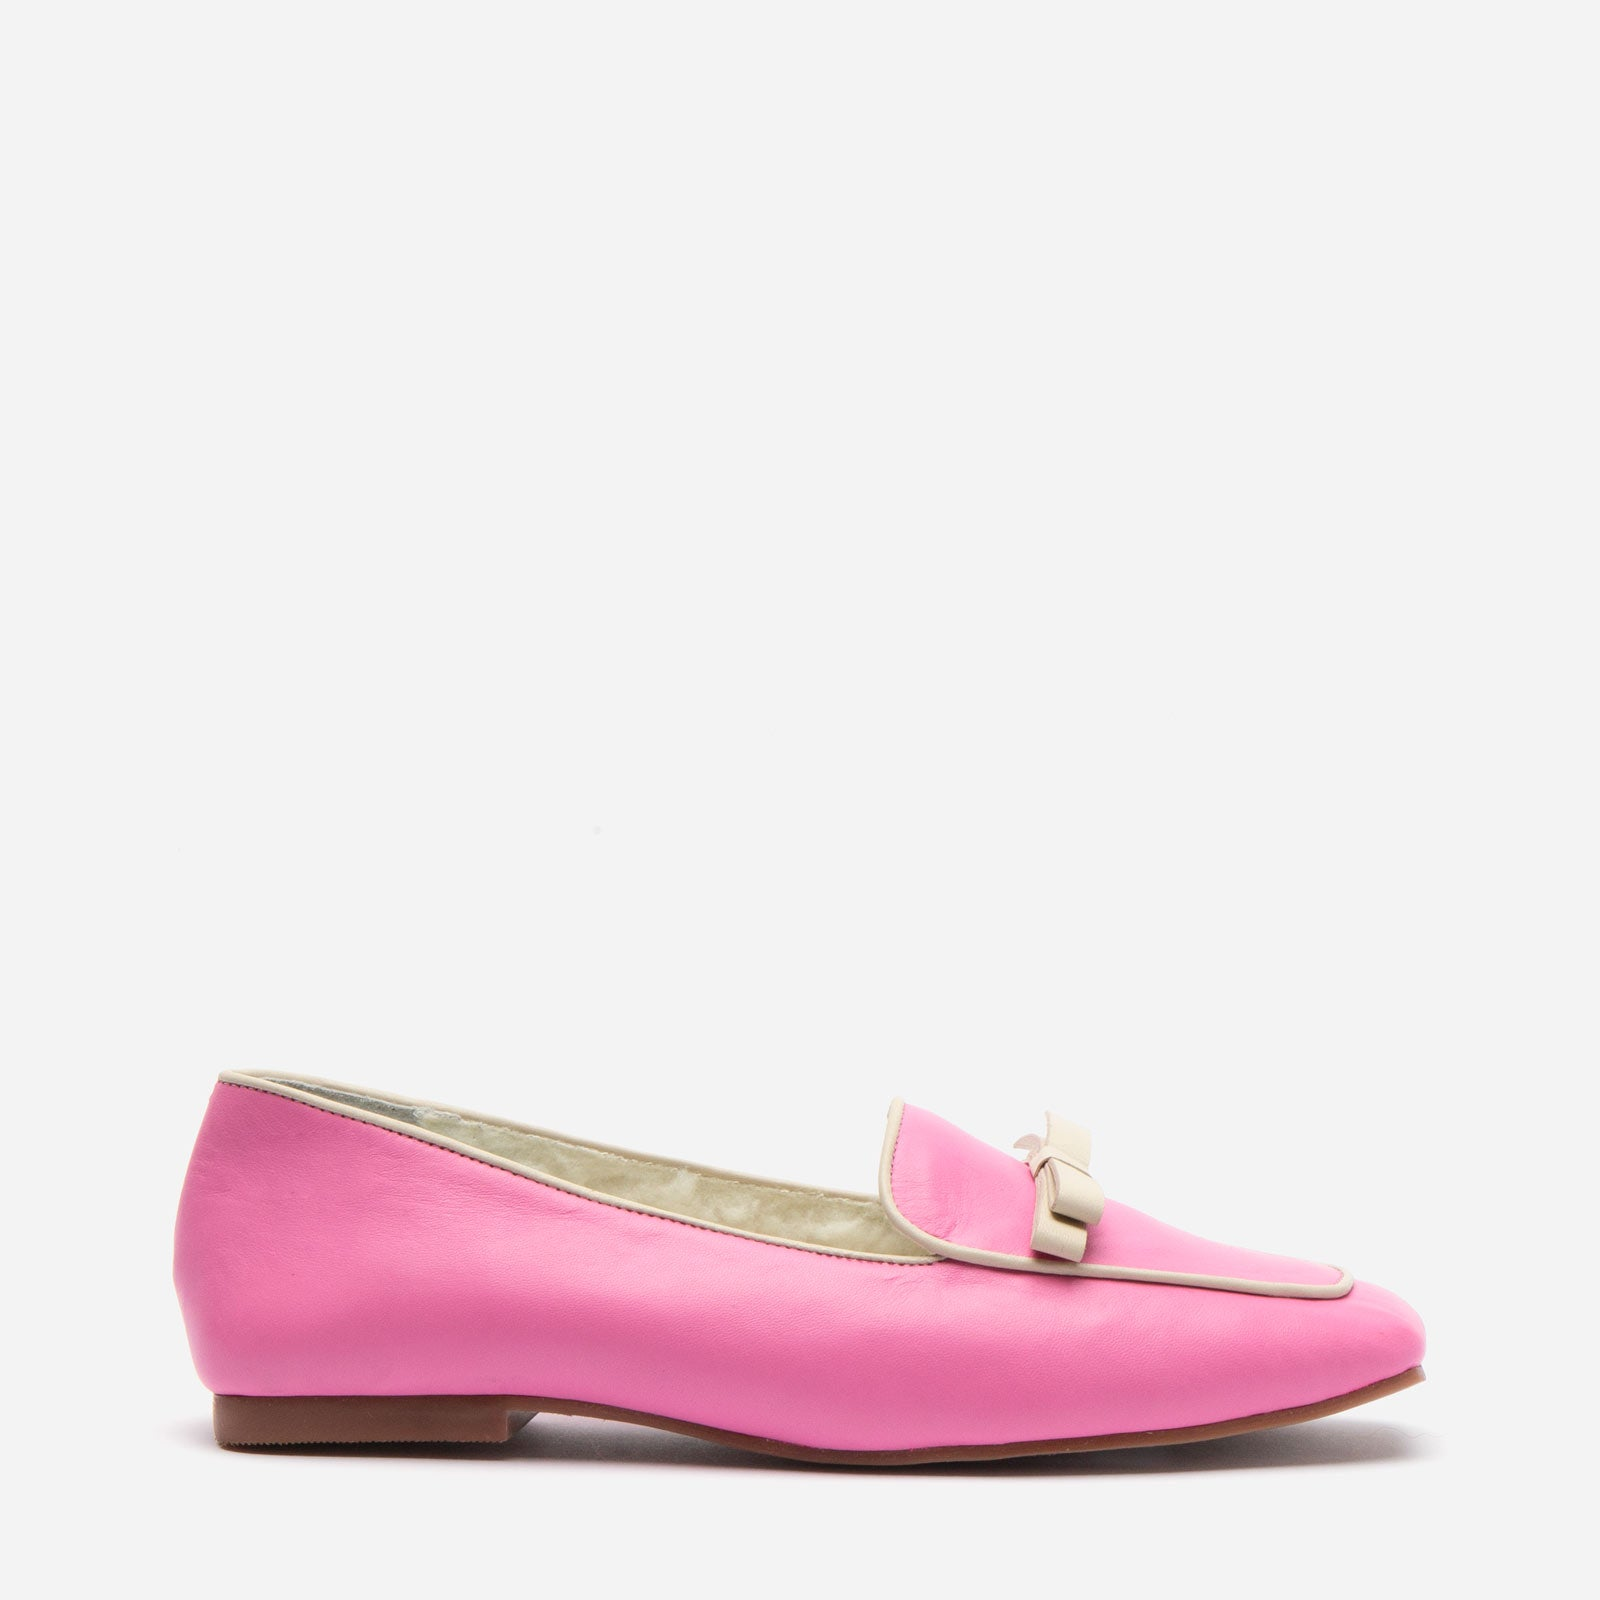 Suzanne Cozy Loafer Nappa Faux Shearling Pink - Frances Valentine